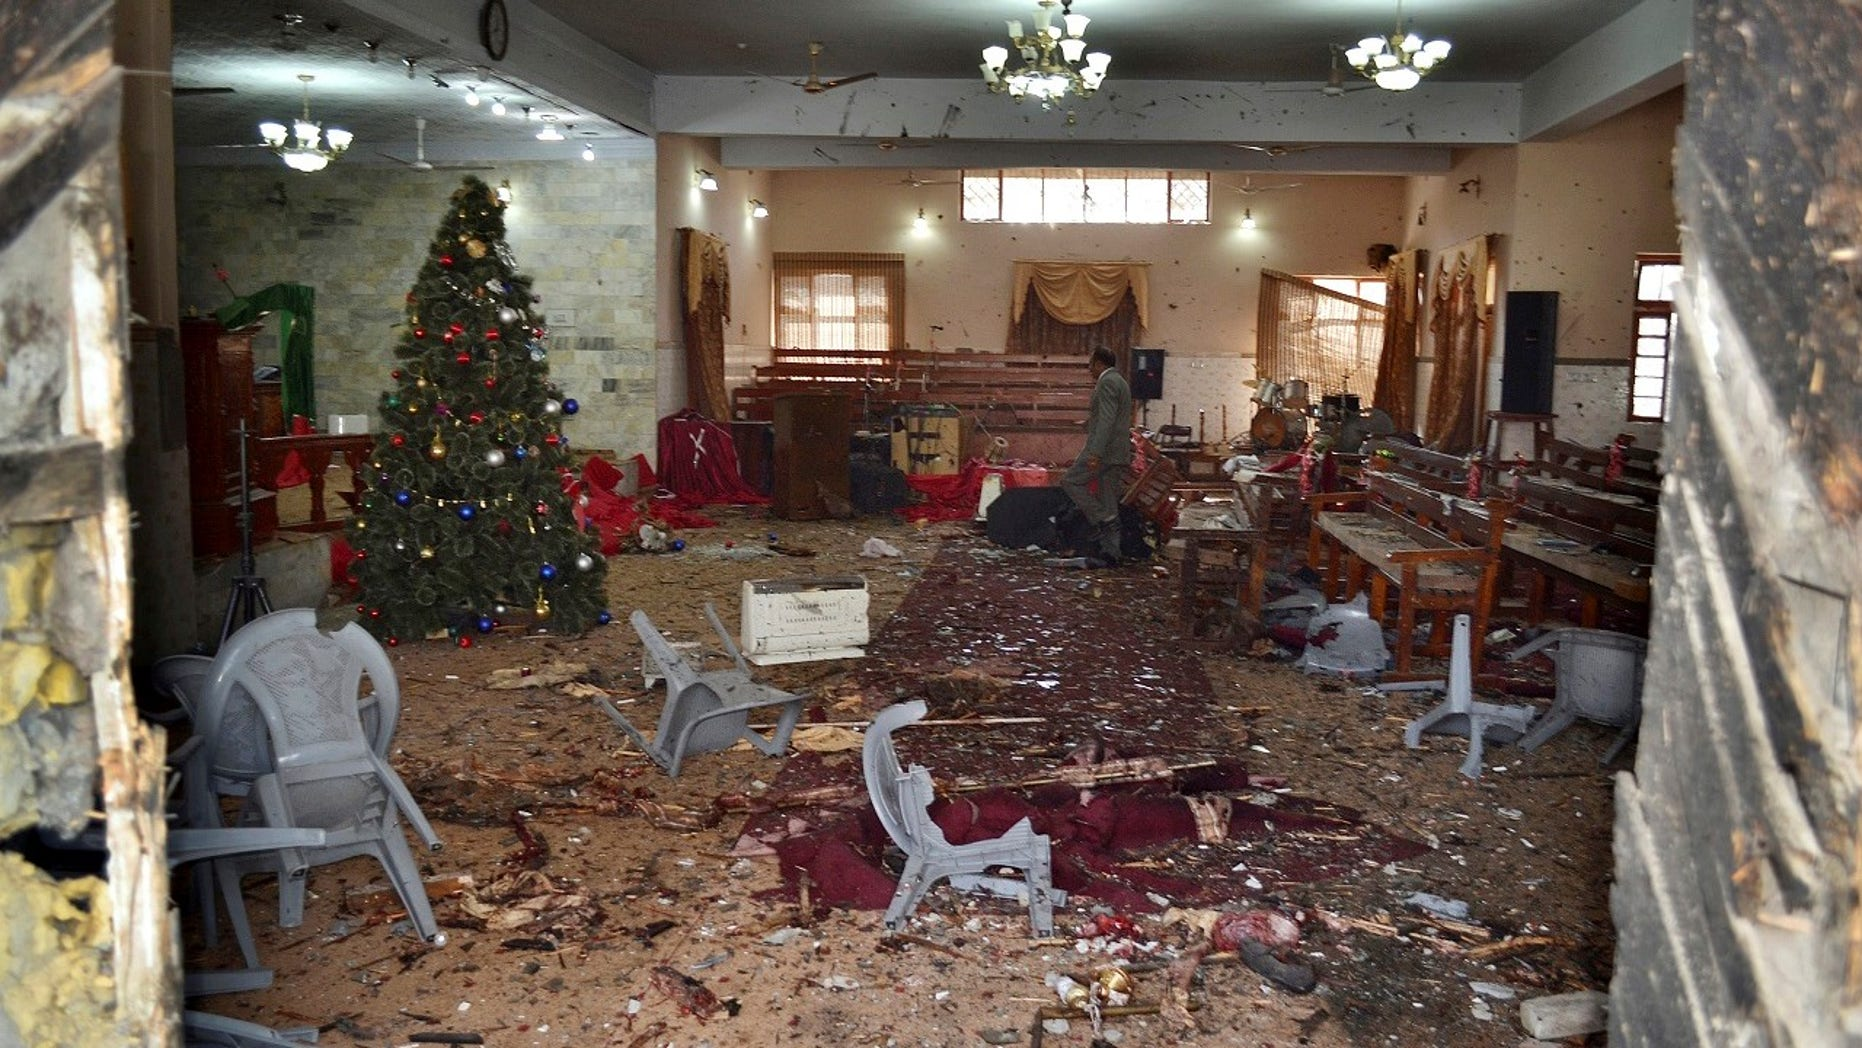 At least nine people were killed when two suicide bombers attacked the church during pre-Christmas service.